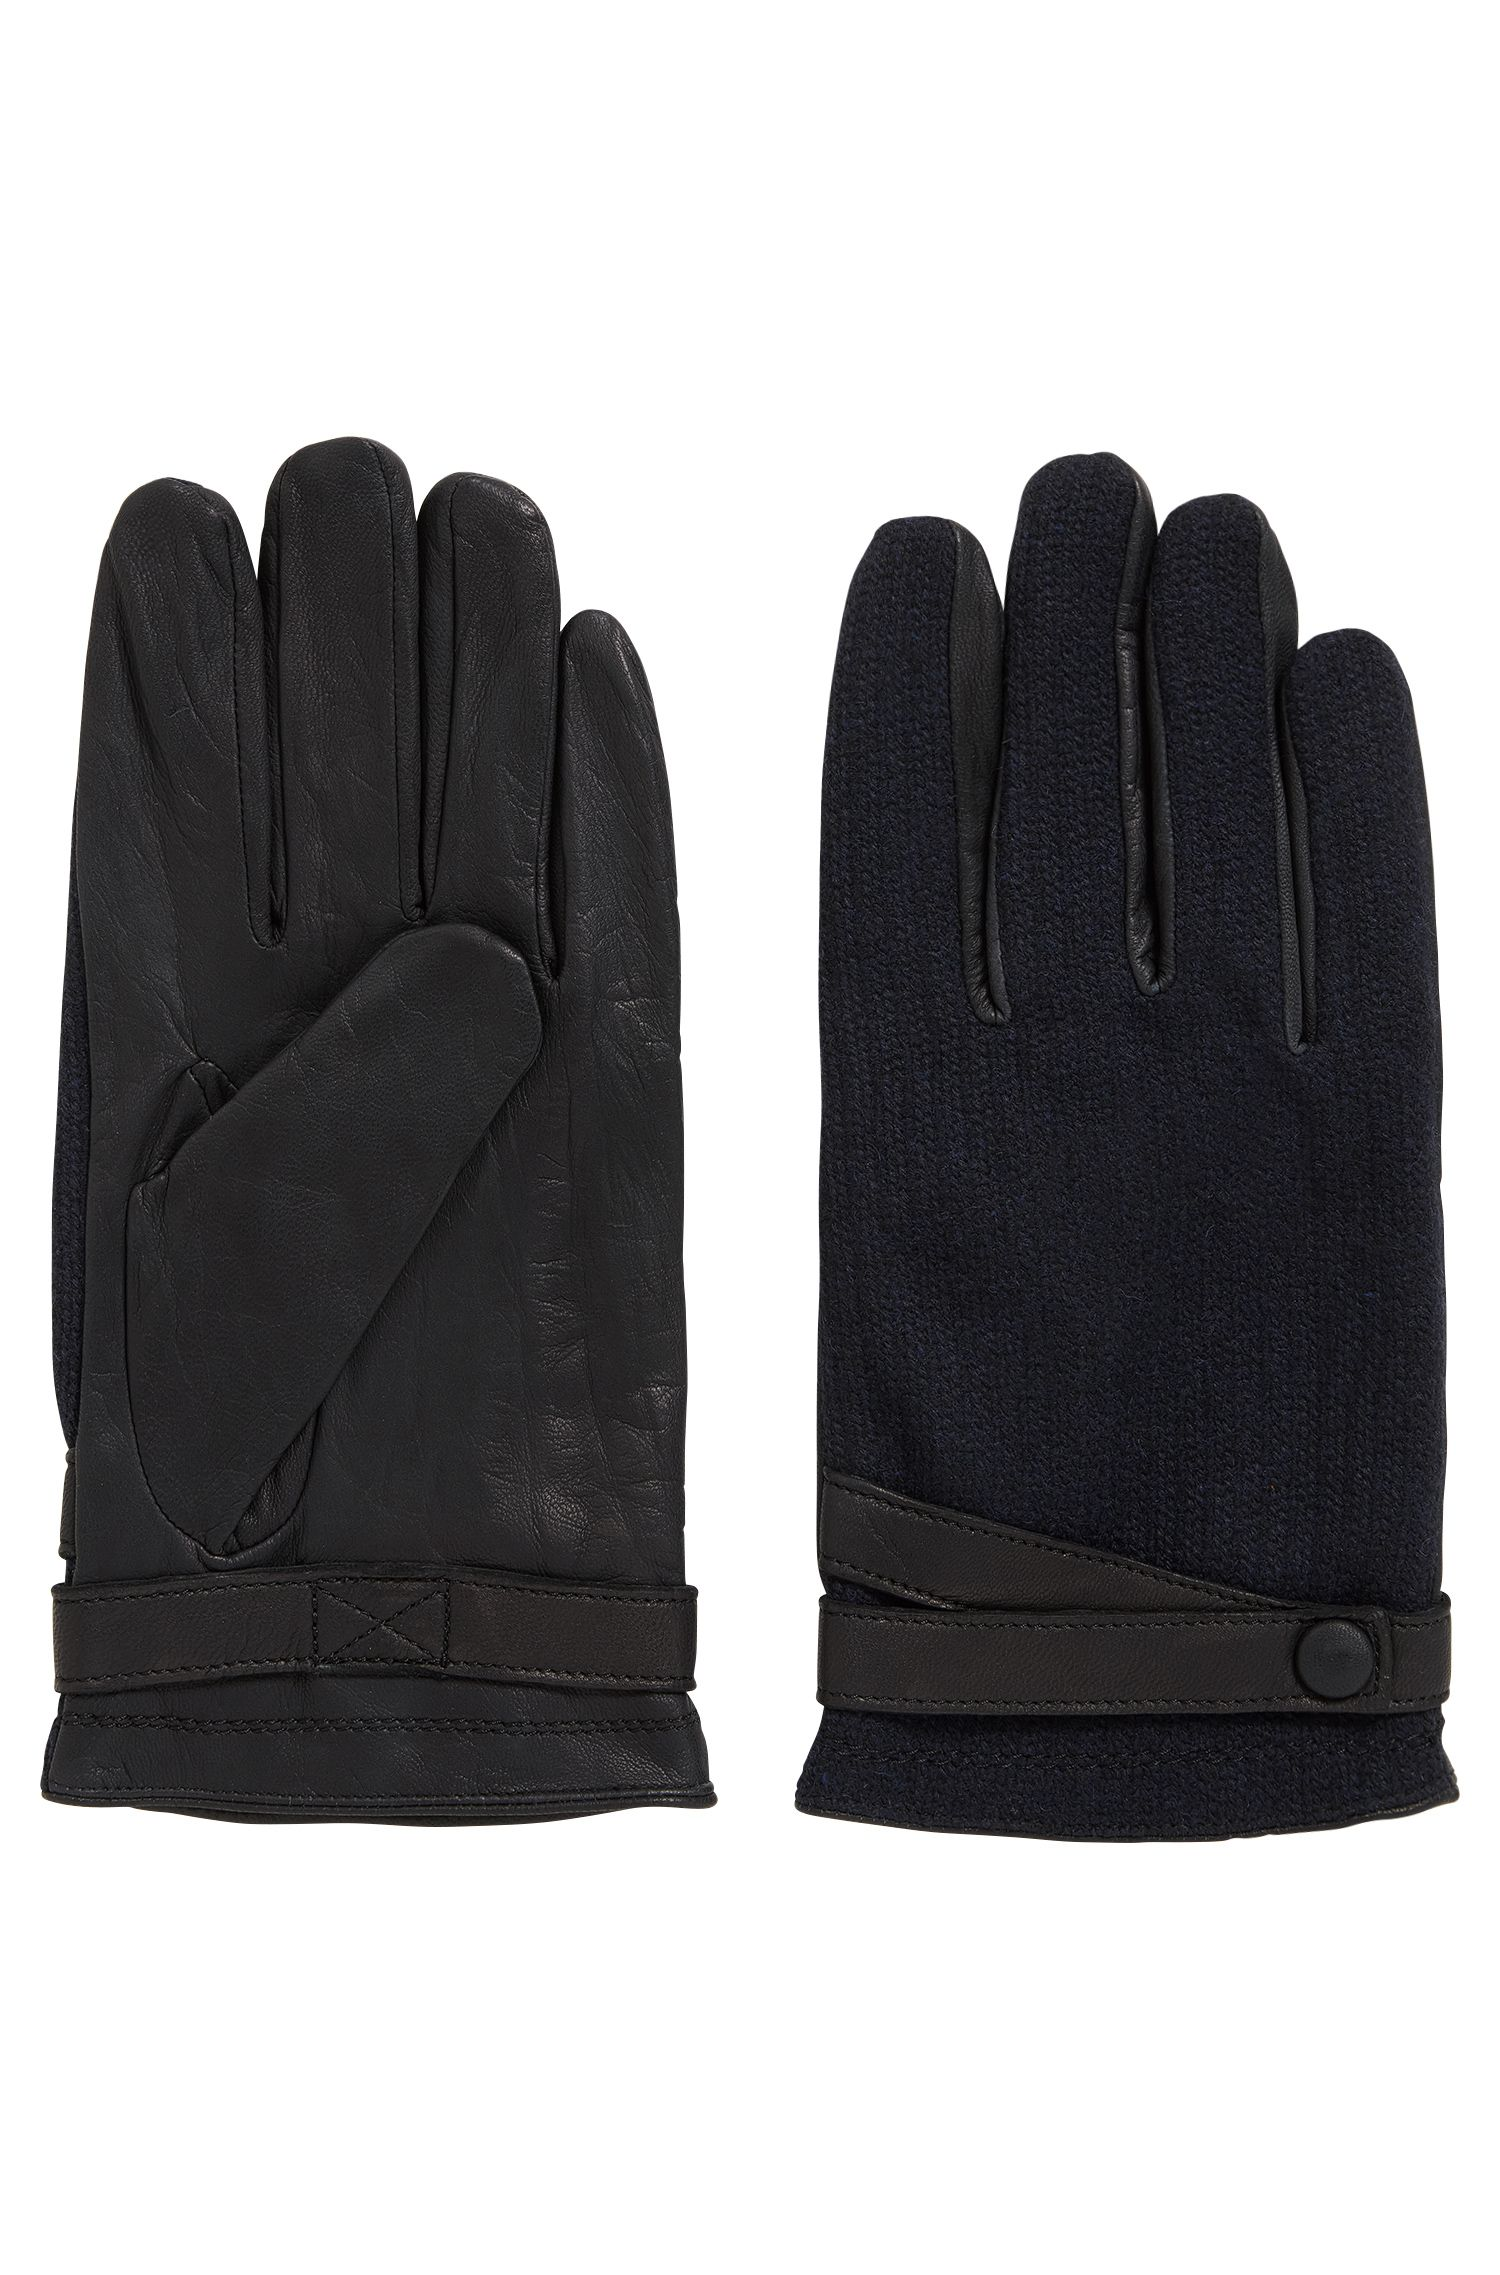 Leather gloves with contrast fabric panels